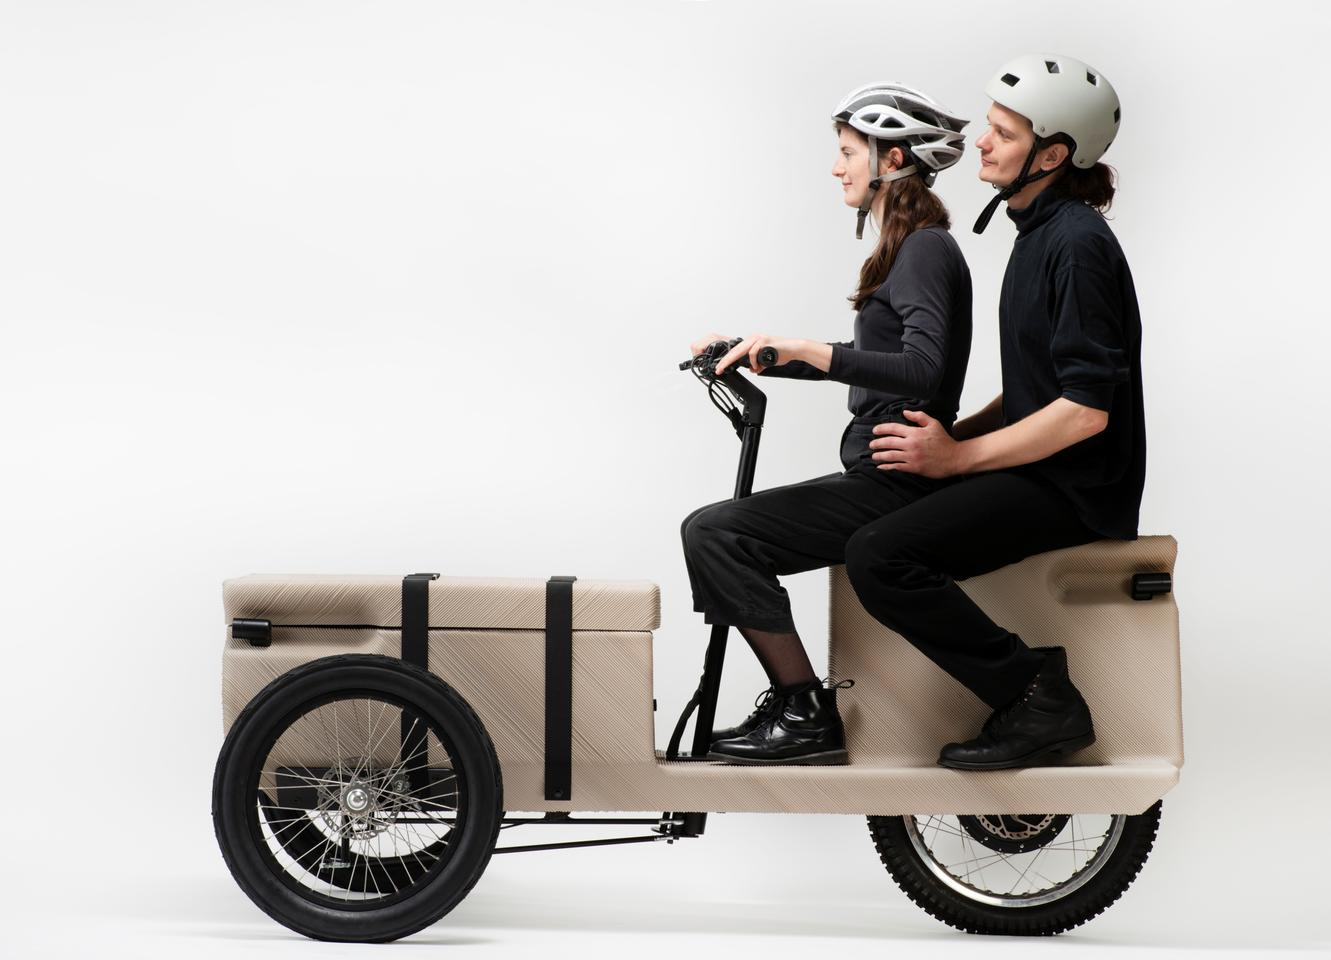 The ZUV's chassis is 3D printed using plastic waste from supermarkets